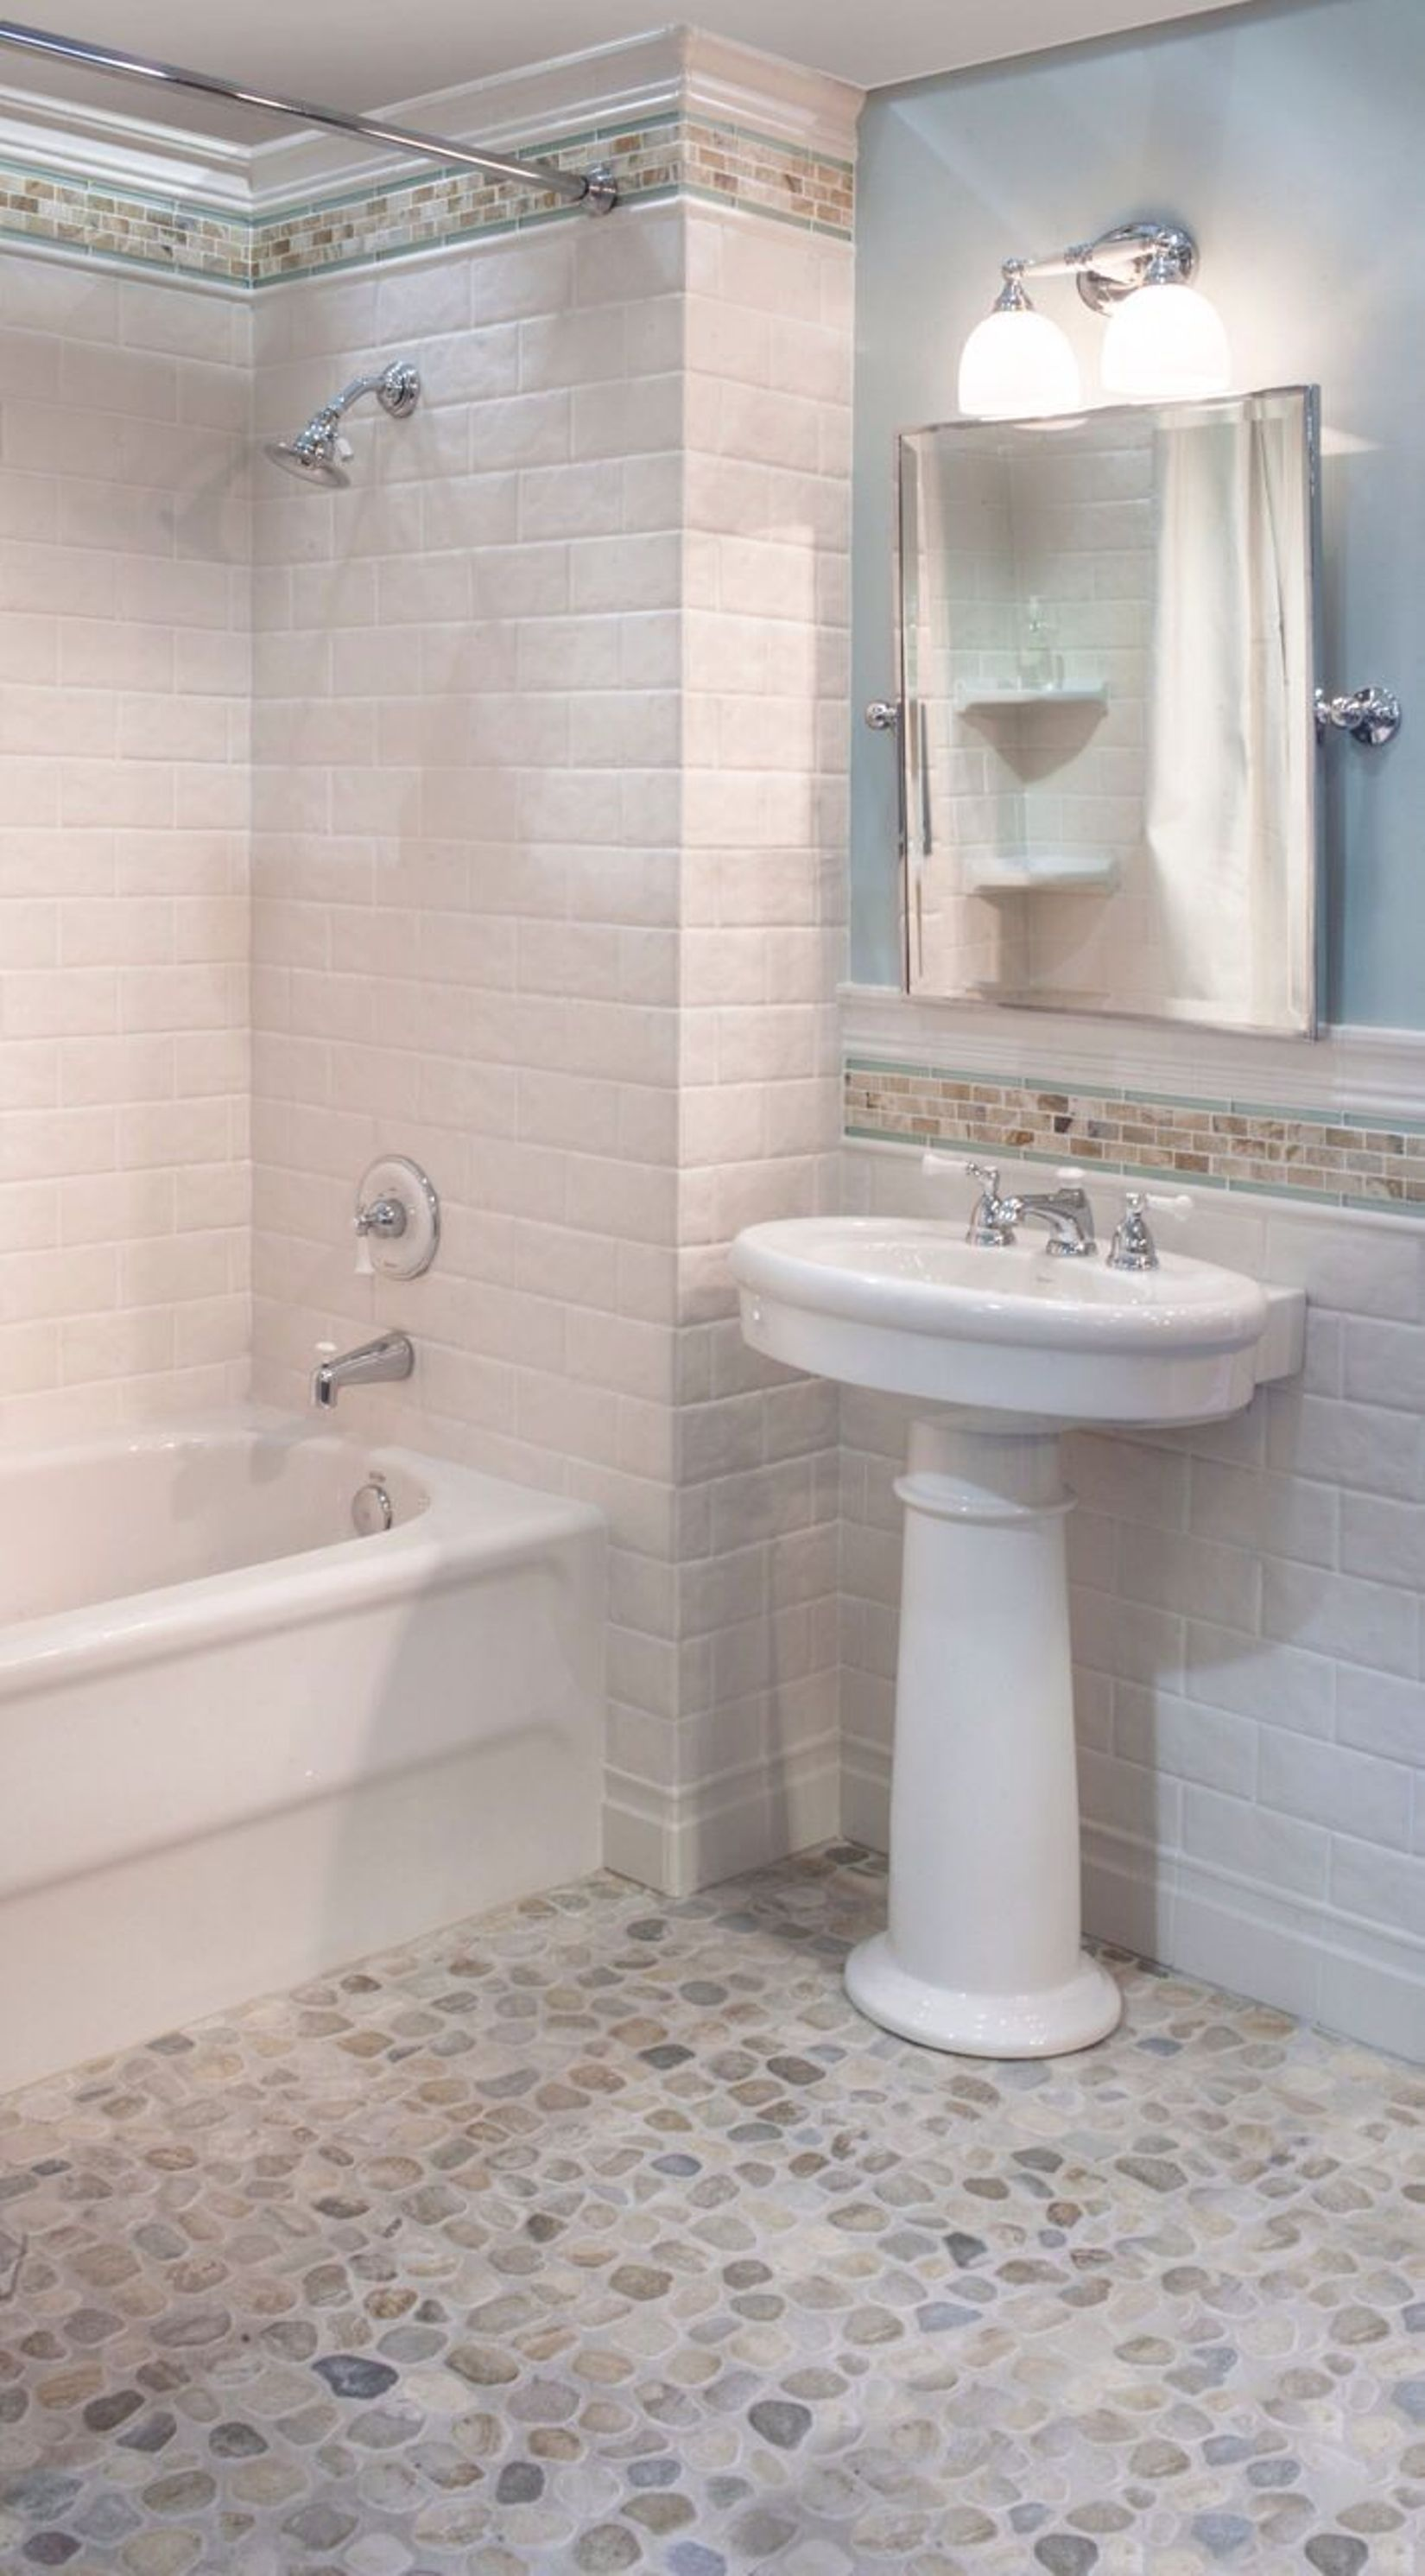 ... Bathroom Tile Ideas With Pebble Rocks On The   Bd504af2bd38971ca49ab490ef44c357 ...